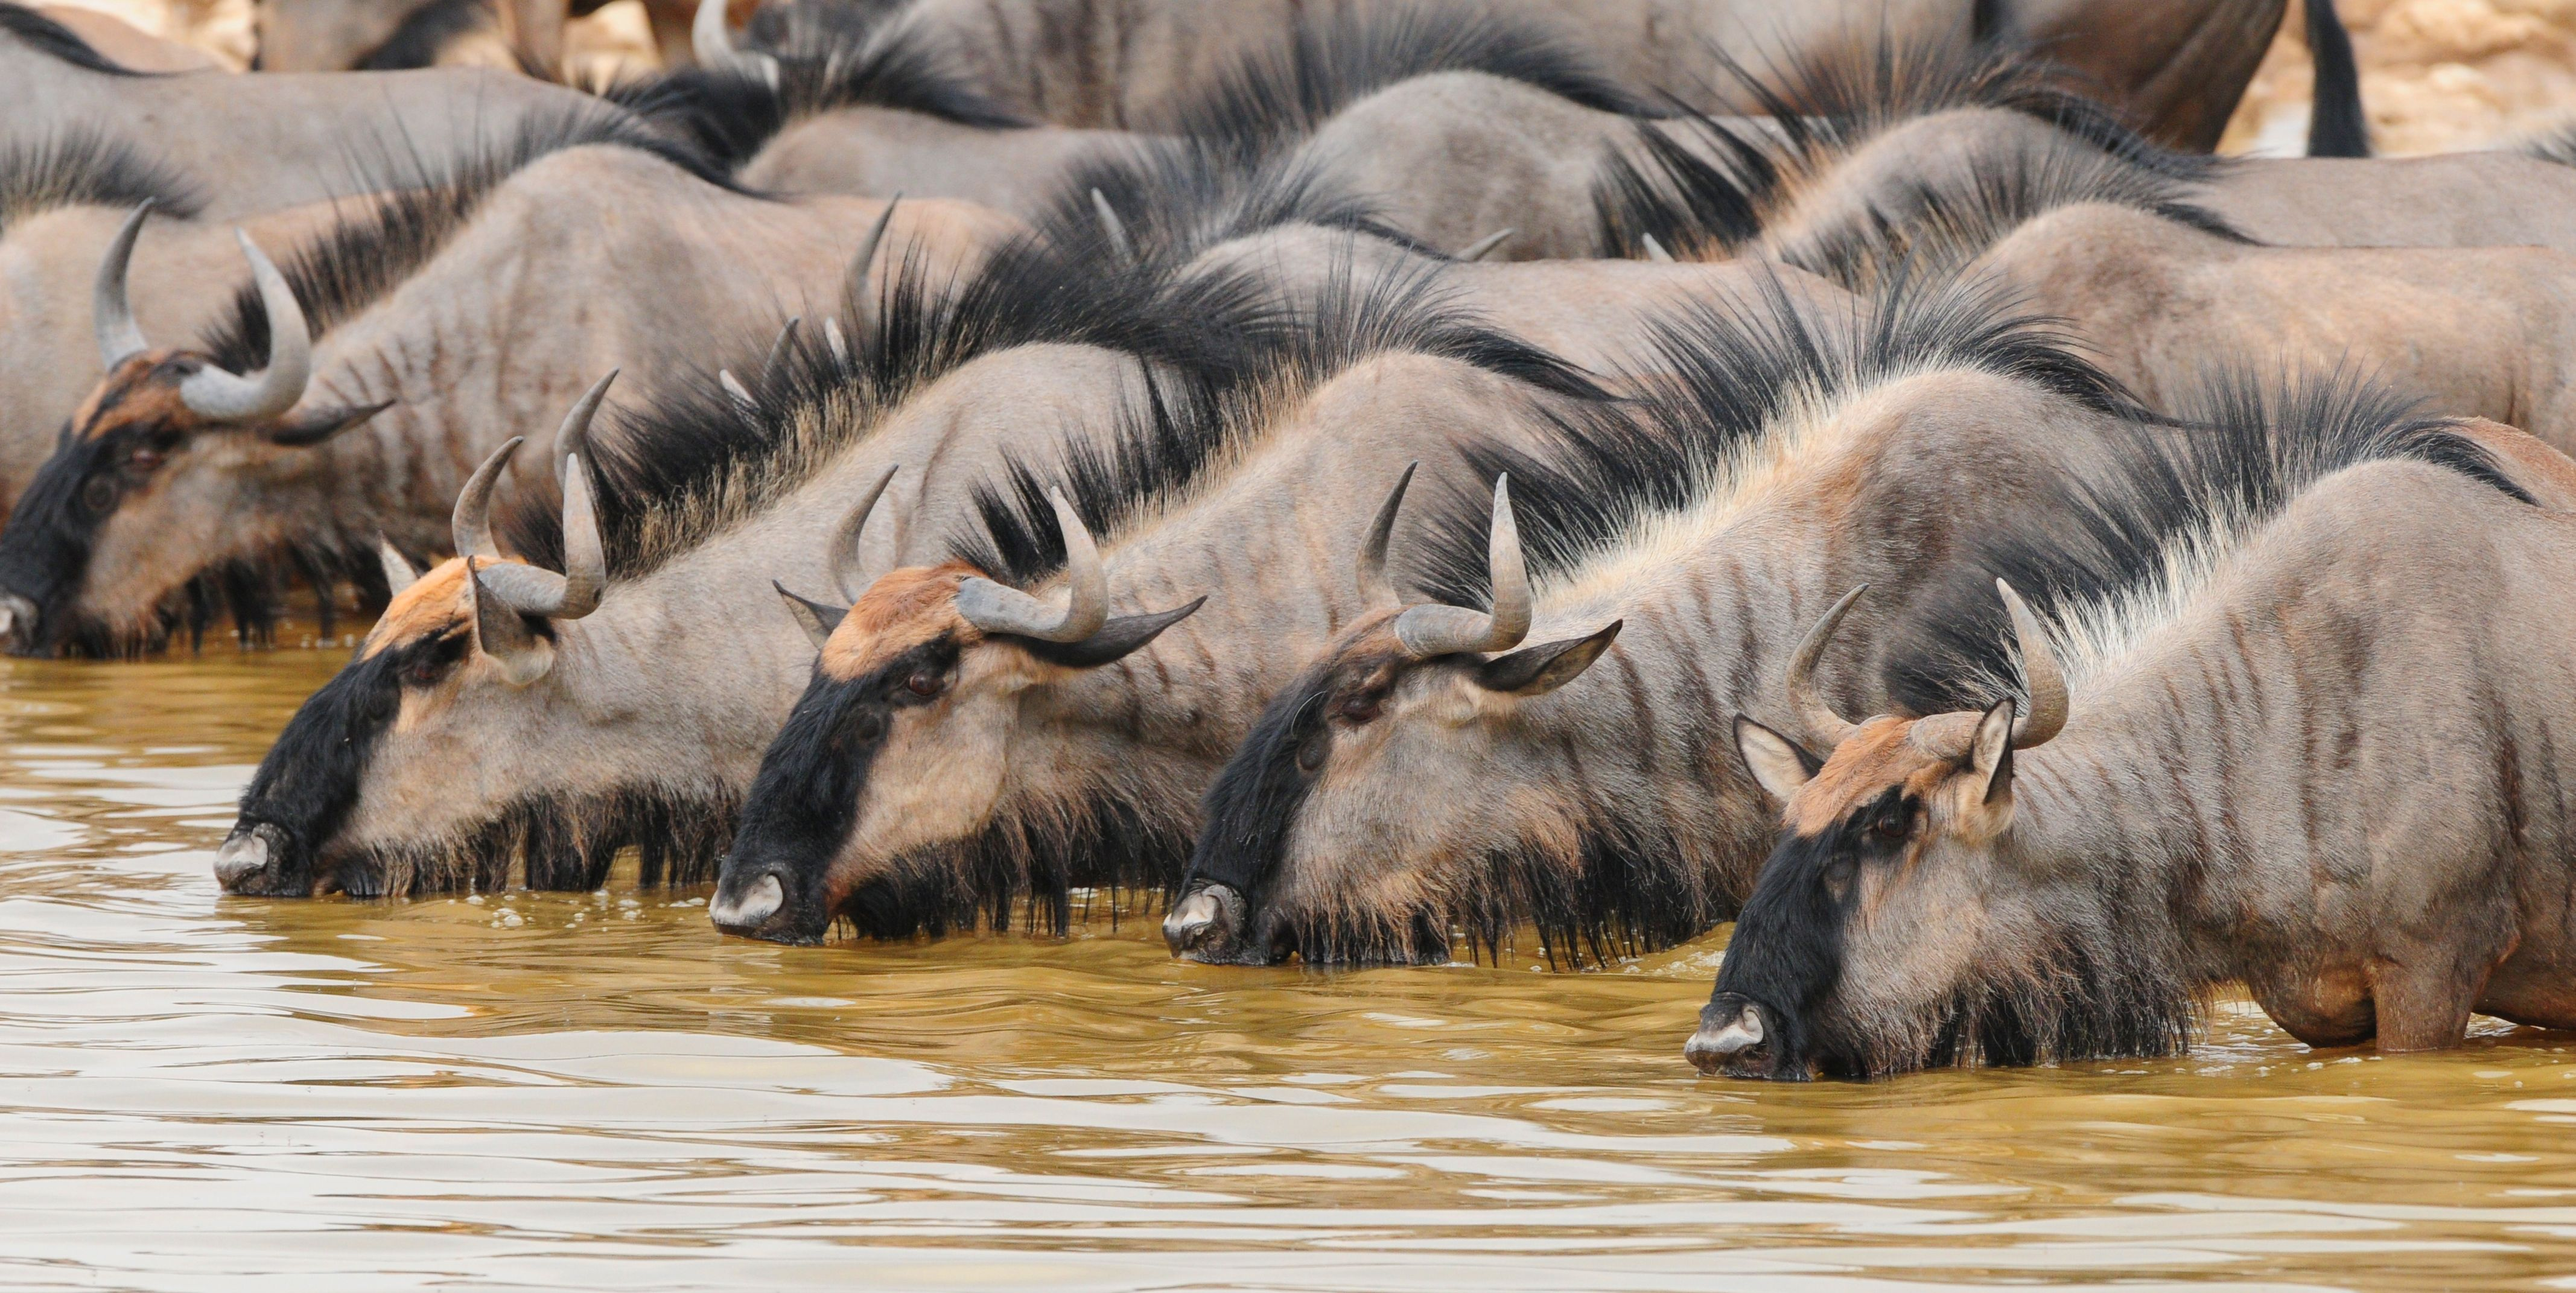 Drinking time for the wildebeest in Etosha